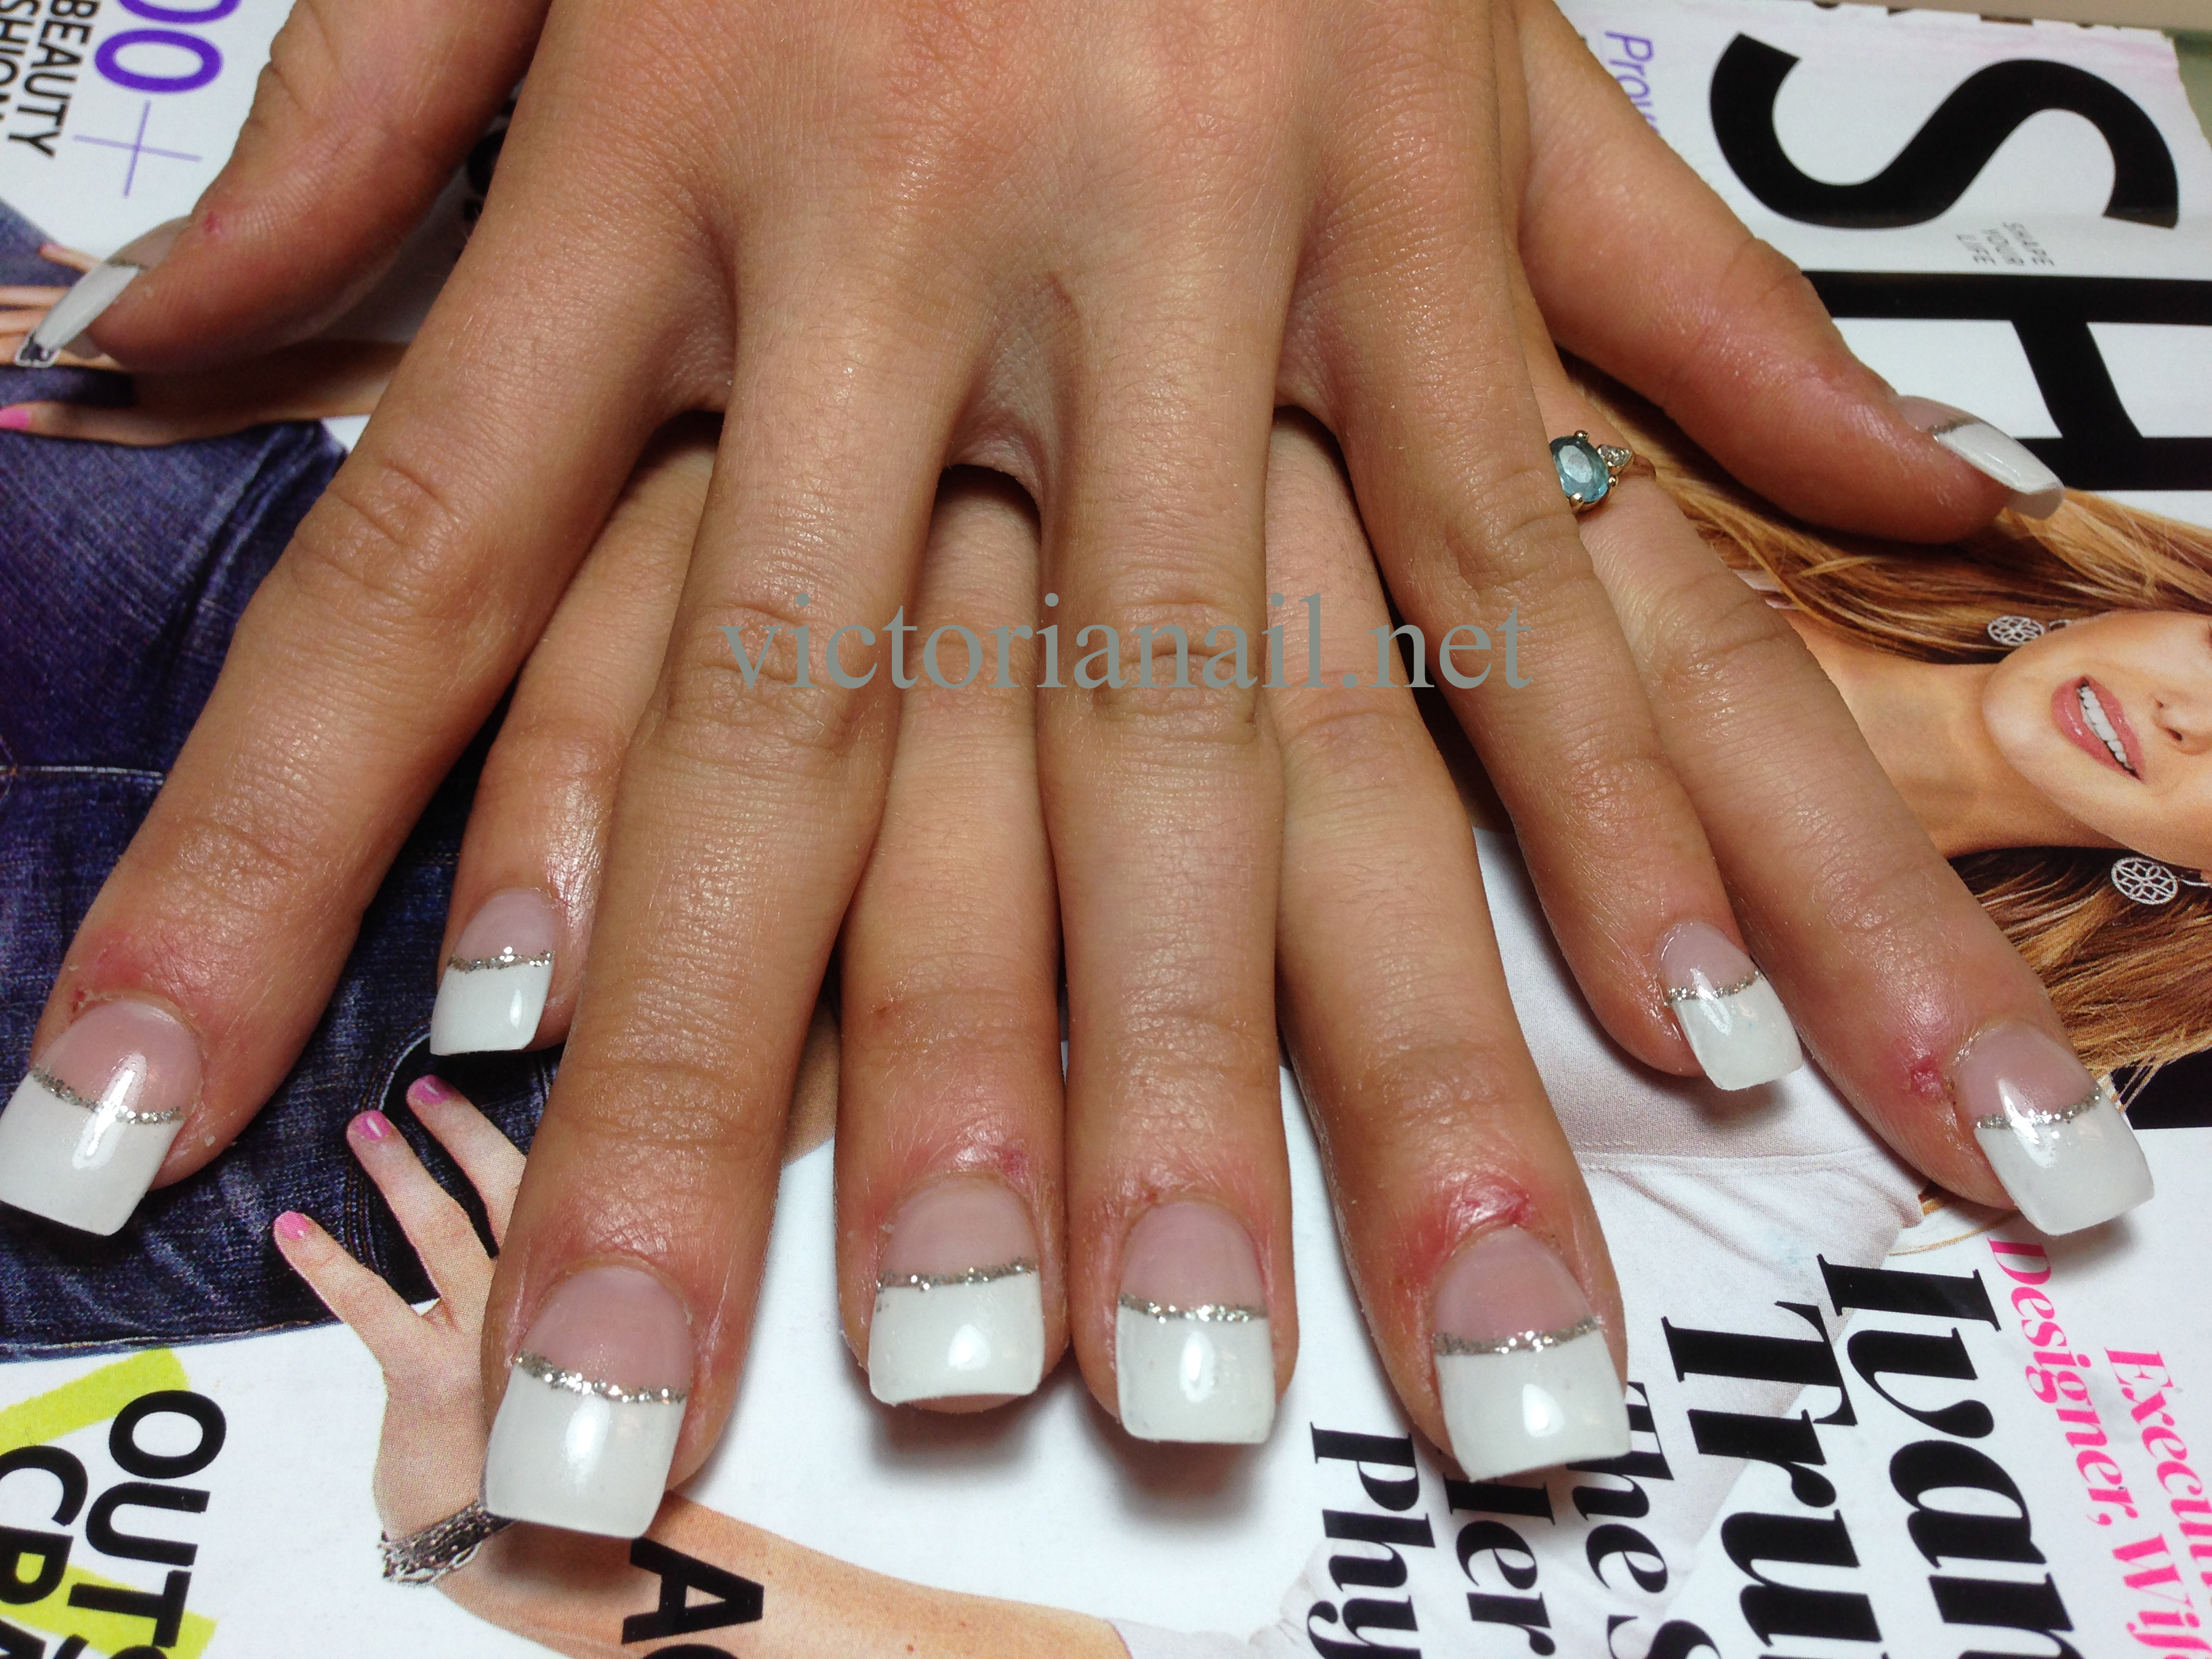 Nails ideas for prom 2015 on Victoria Nails - Special Occasion Nails ...